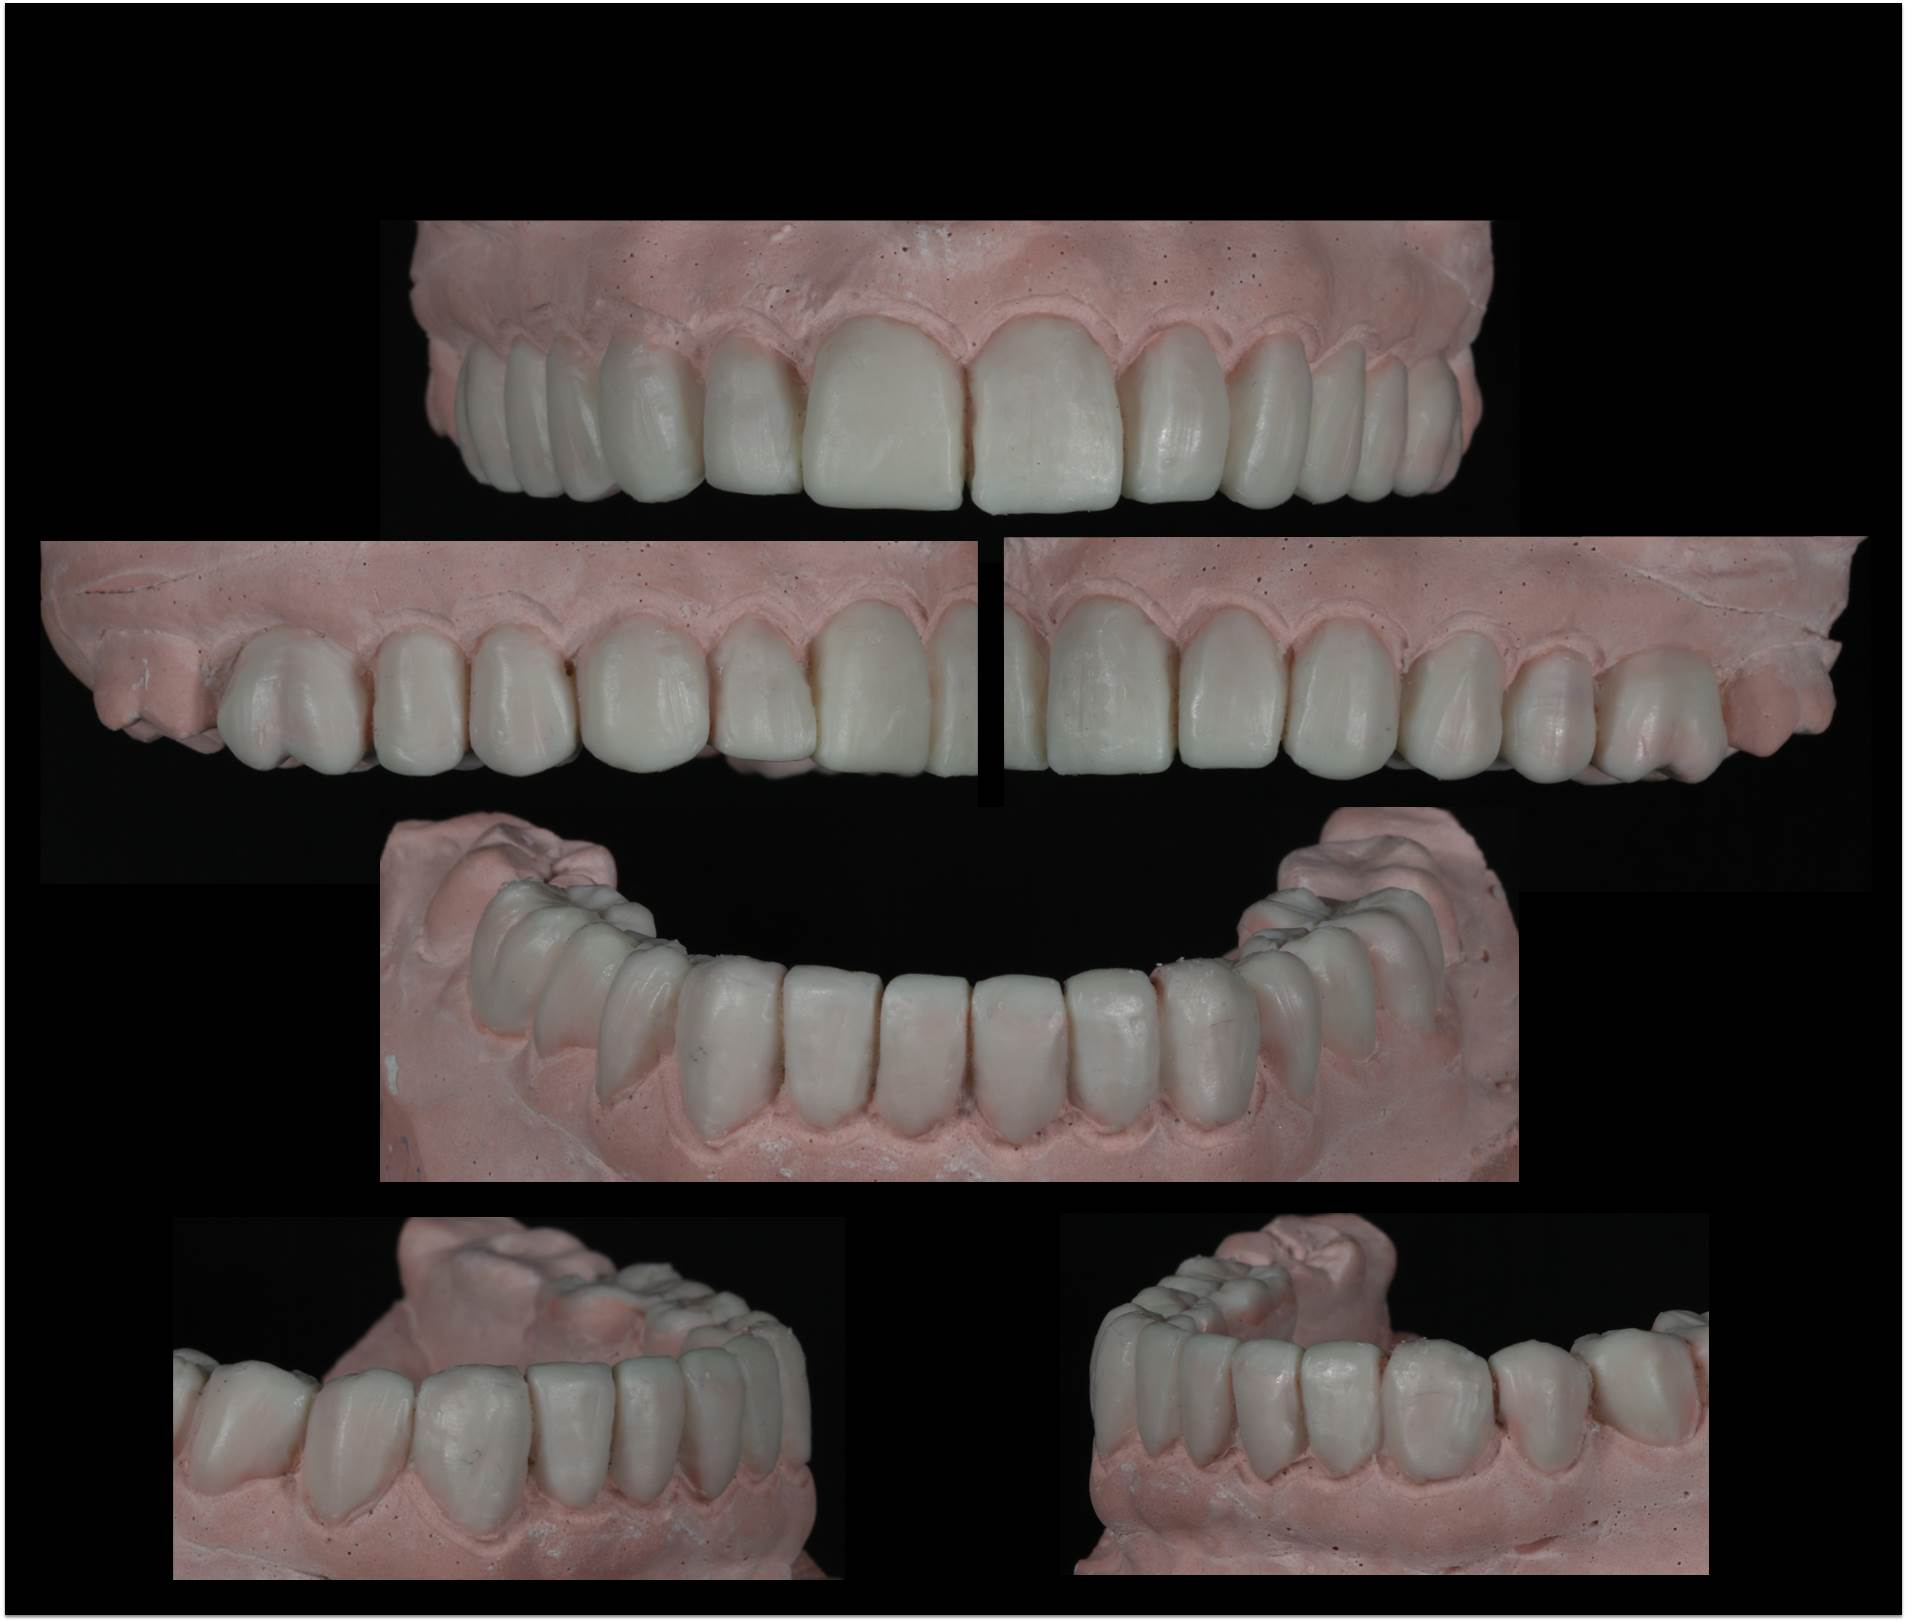 Mock Up o modelo de simulación en Estética Dental